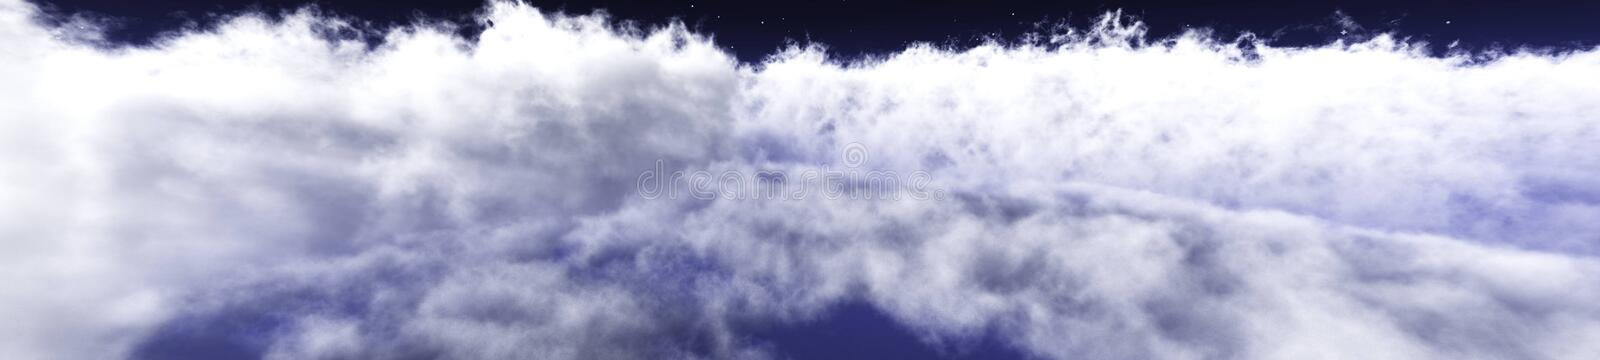 Over the clouds environment map. In the clouds, the sun in clouds, over the clouds environment map stock images